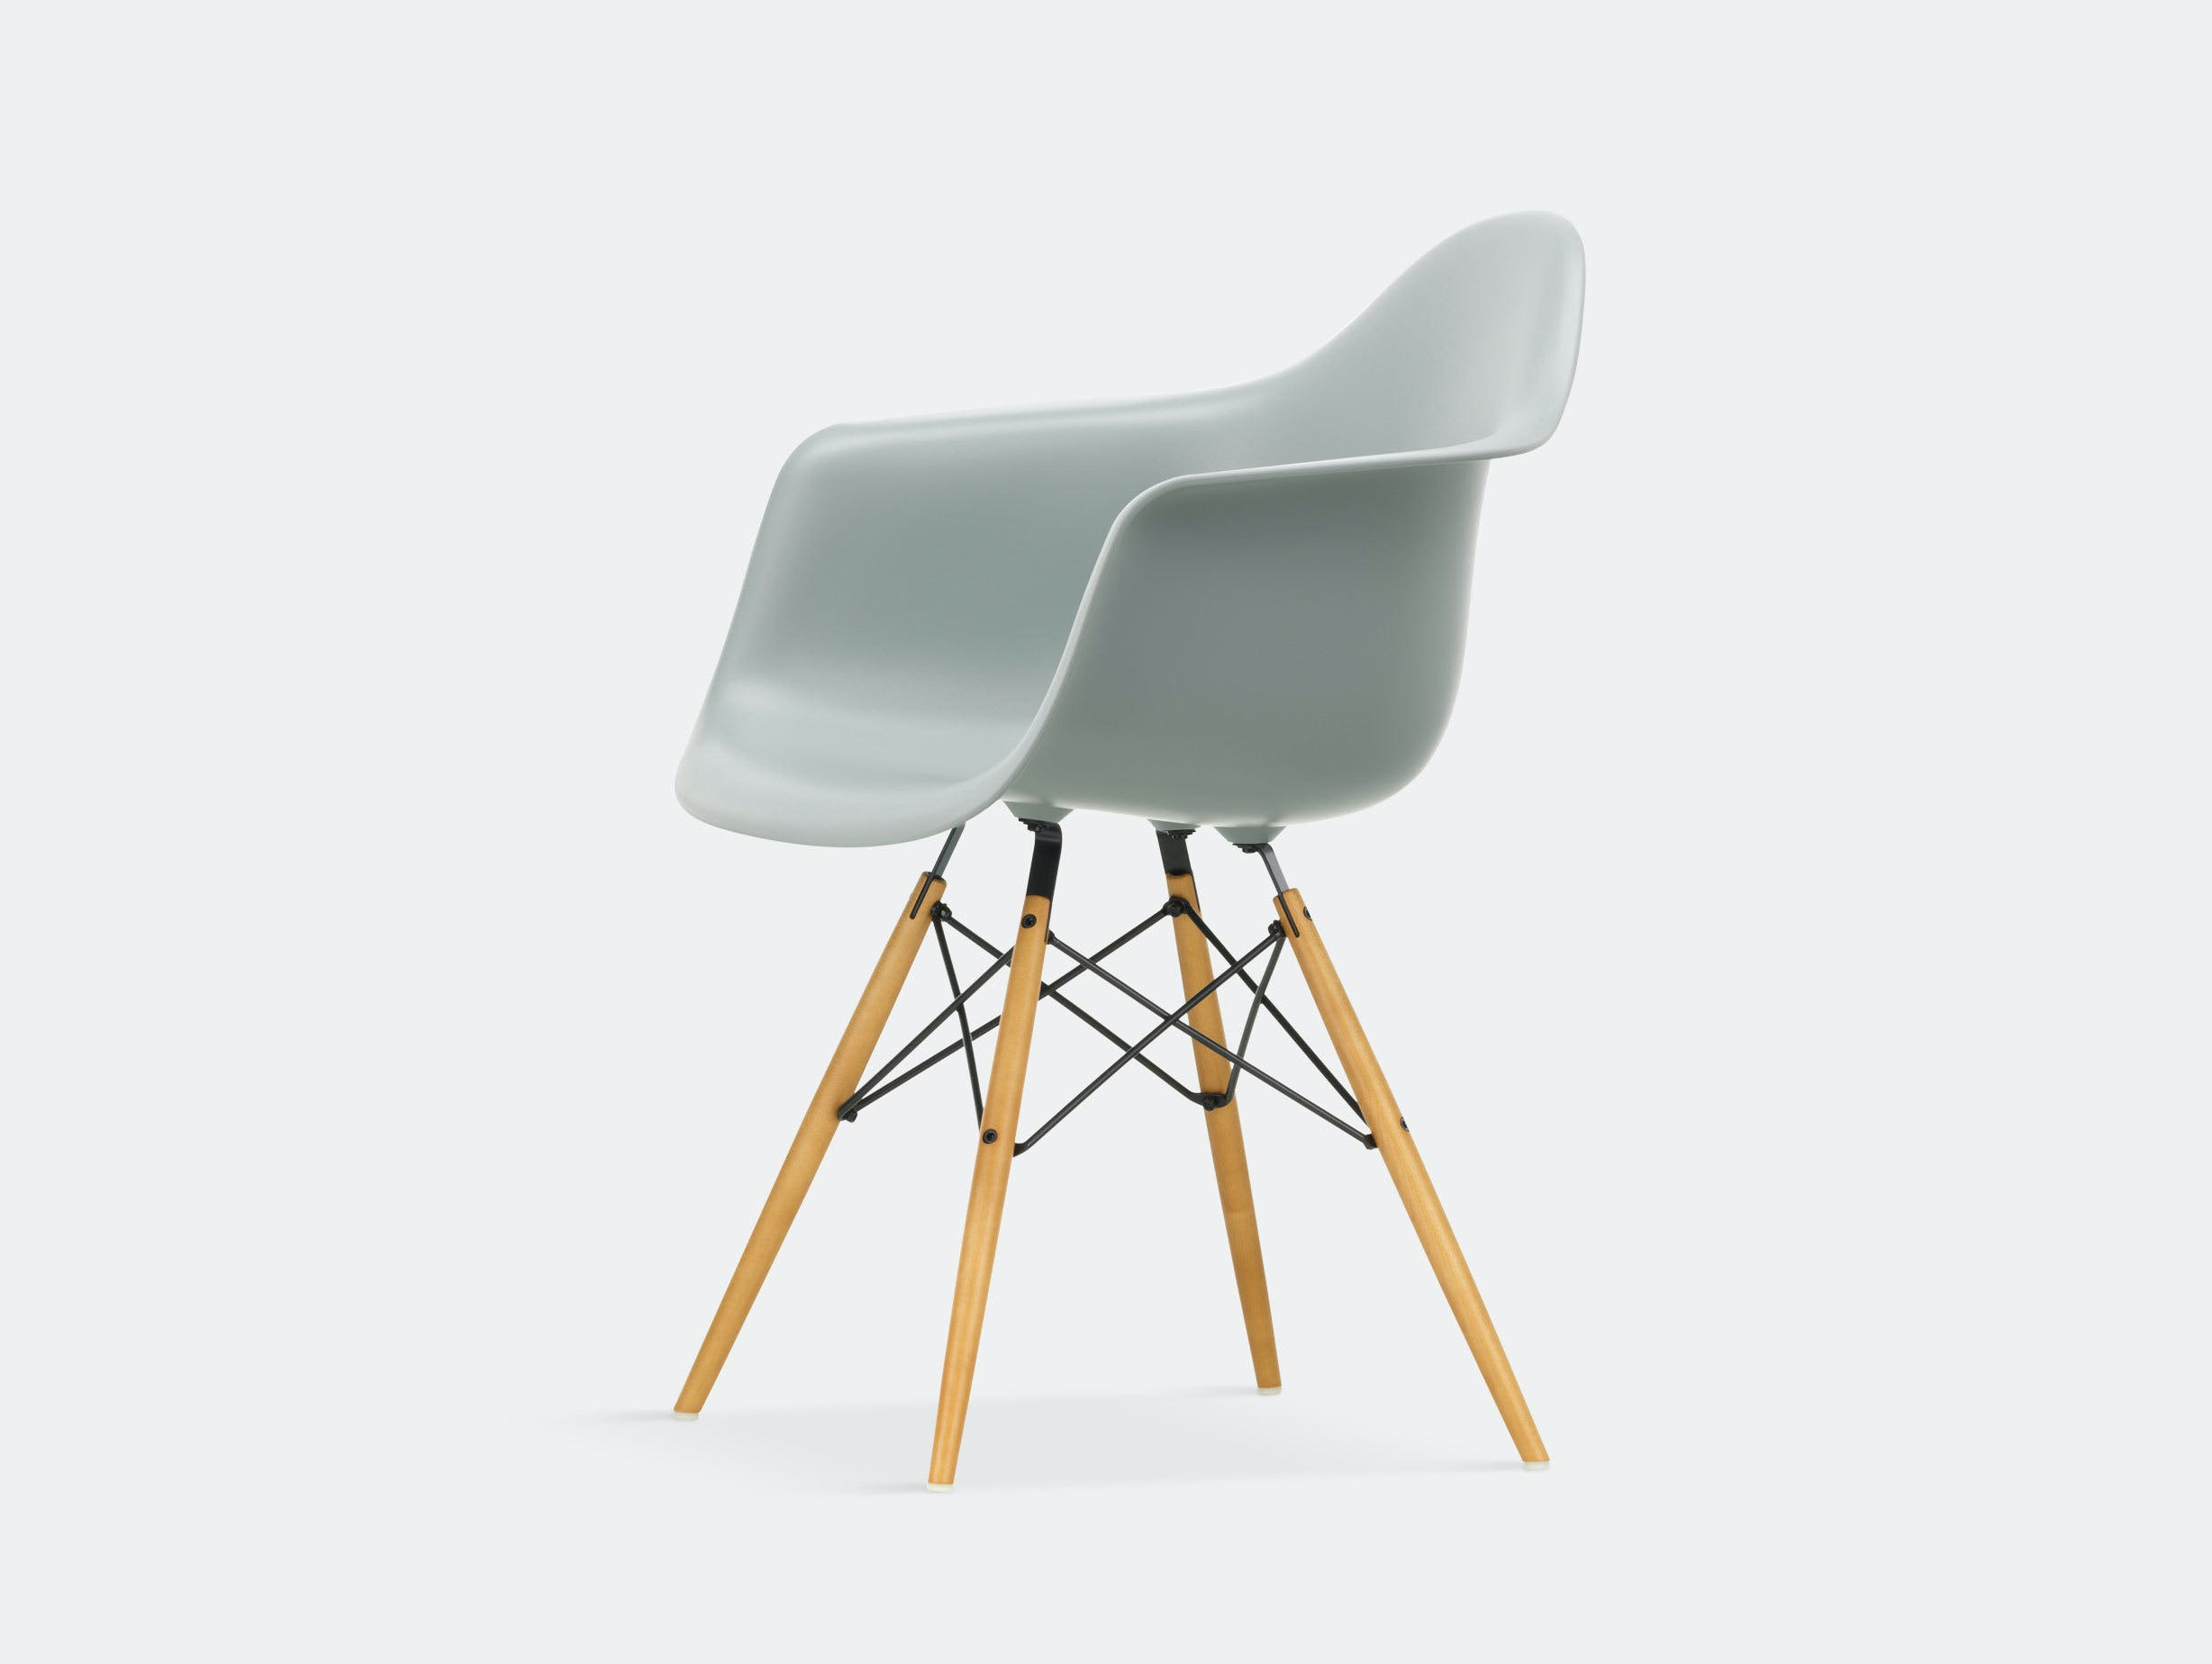 Vitra Eames Plastic Armchair DAW light grey golden maple legs